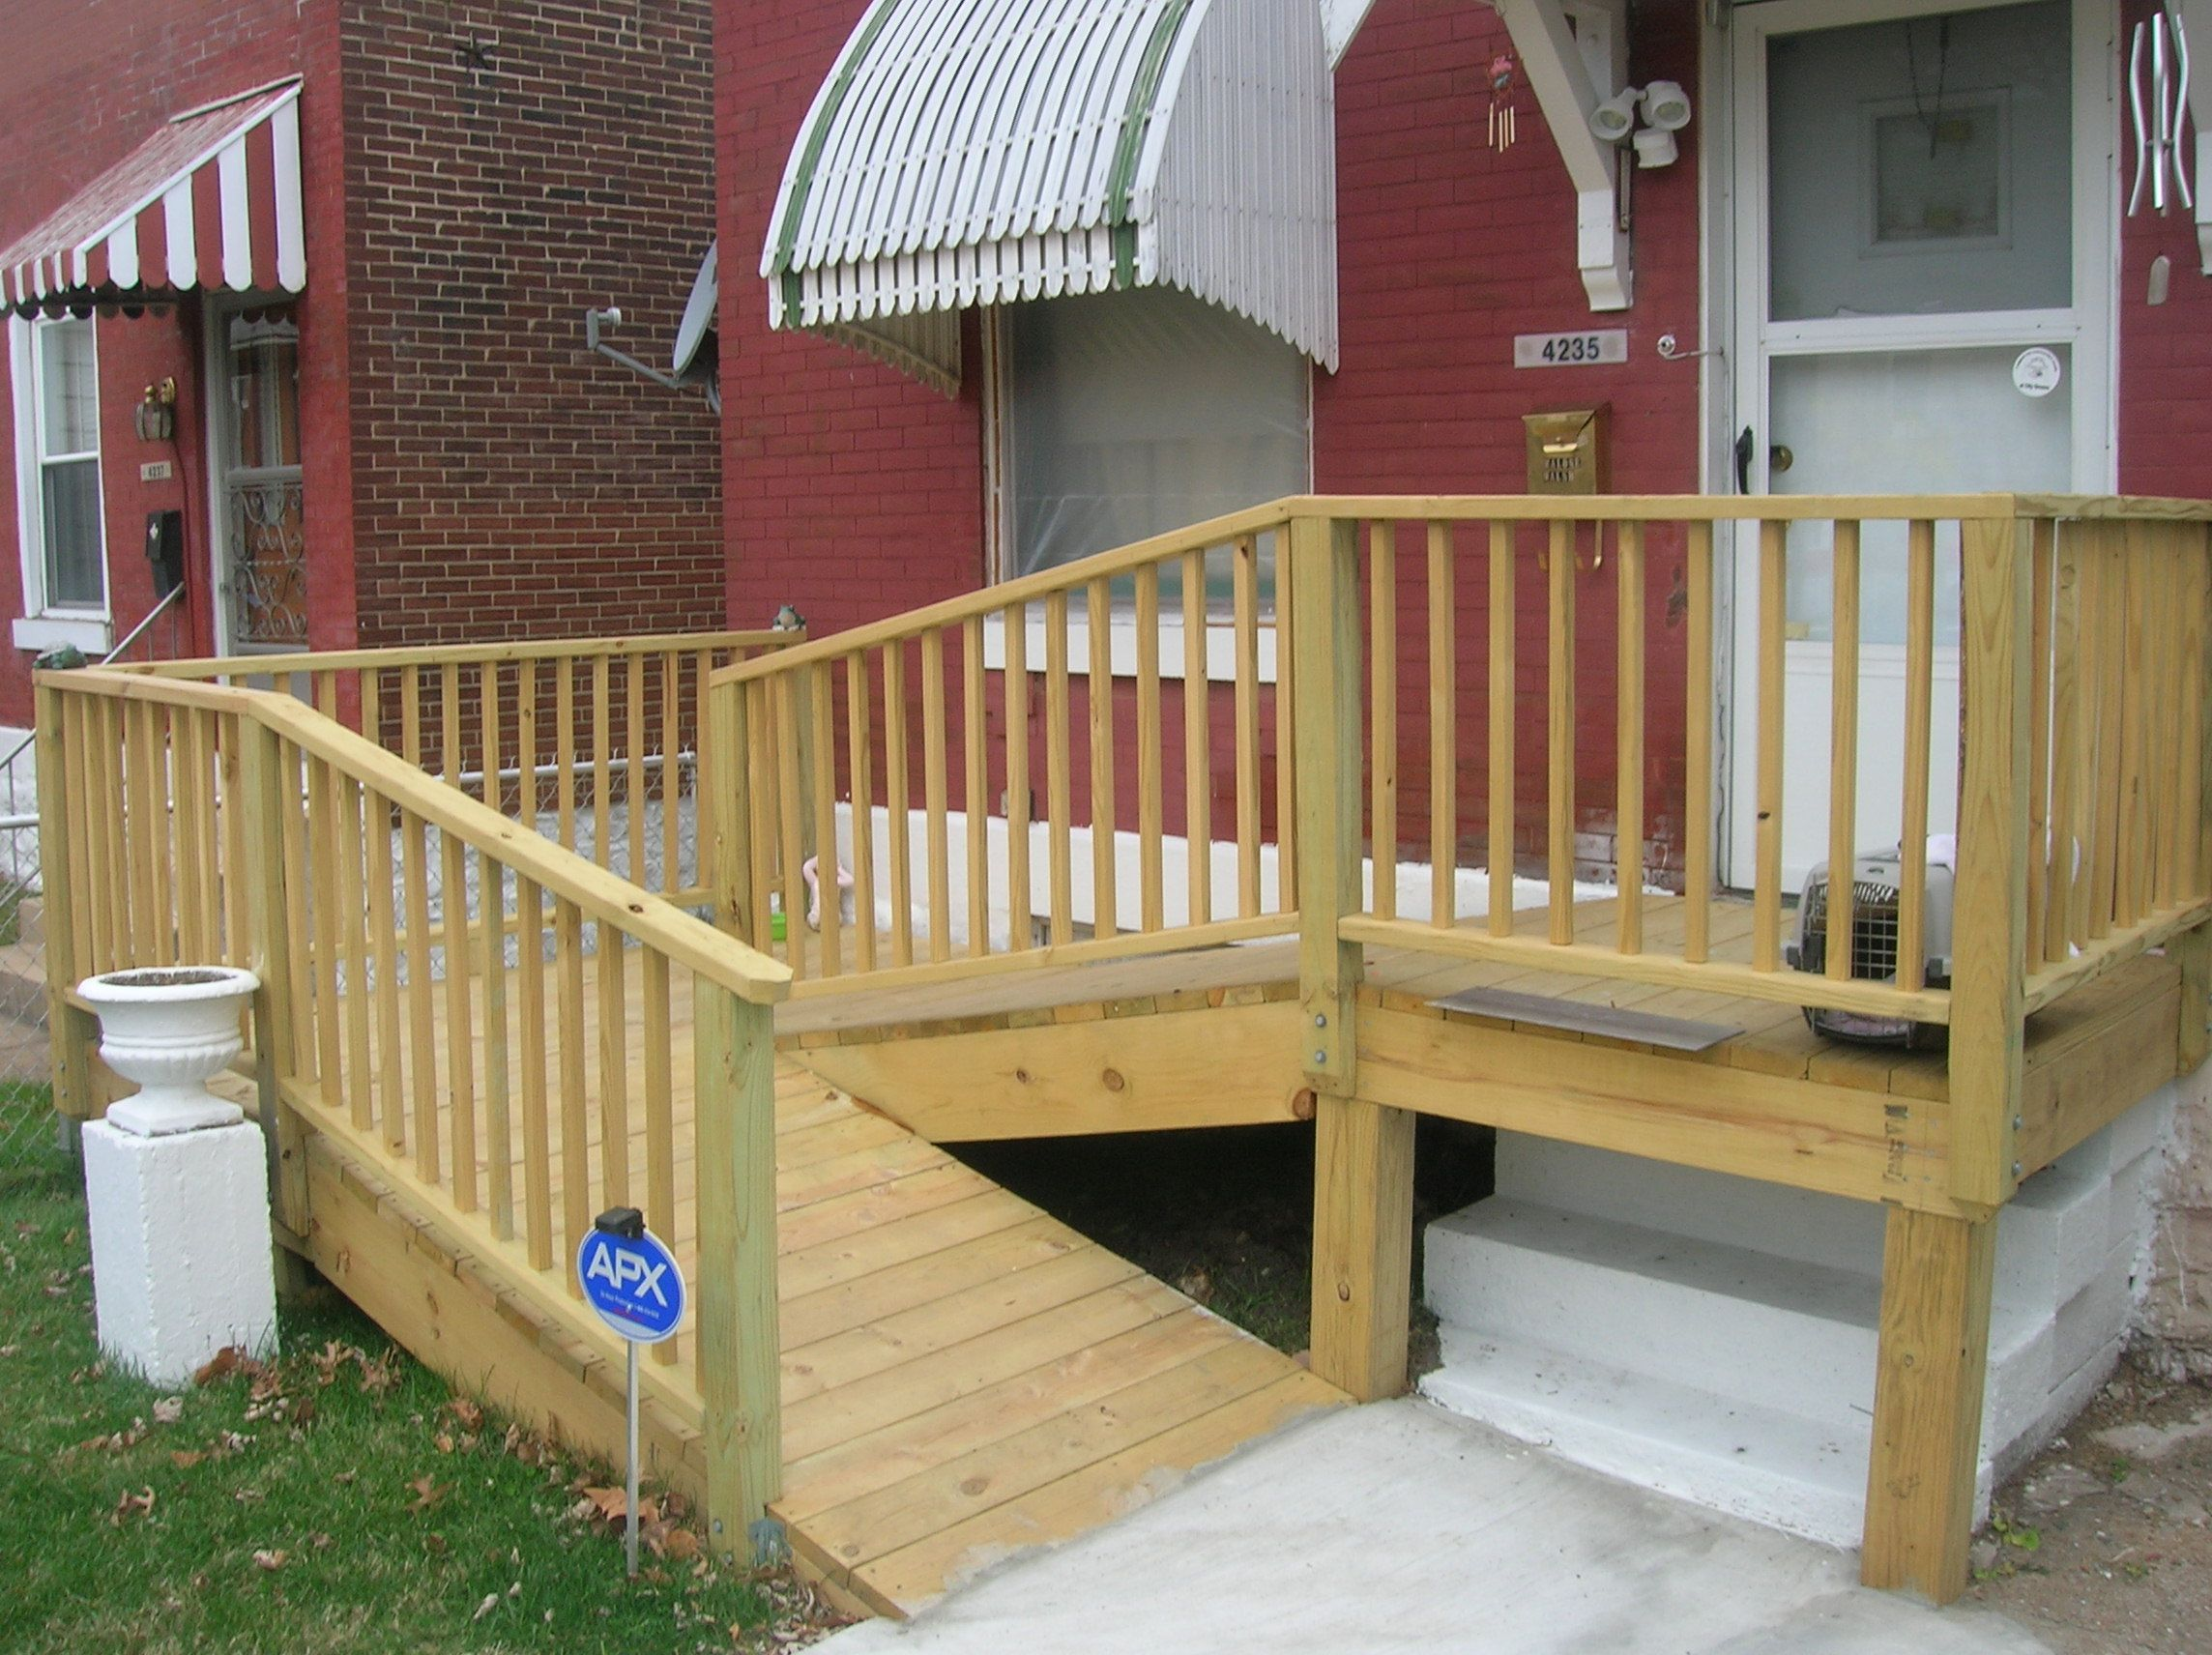 Wheelchair Ramp For Home Wheelchair Ramps For Home Wheelchair